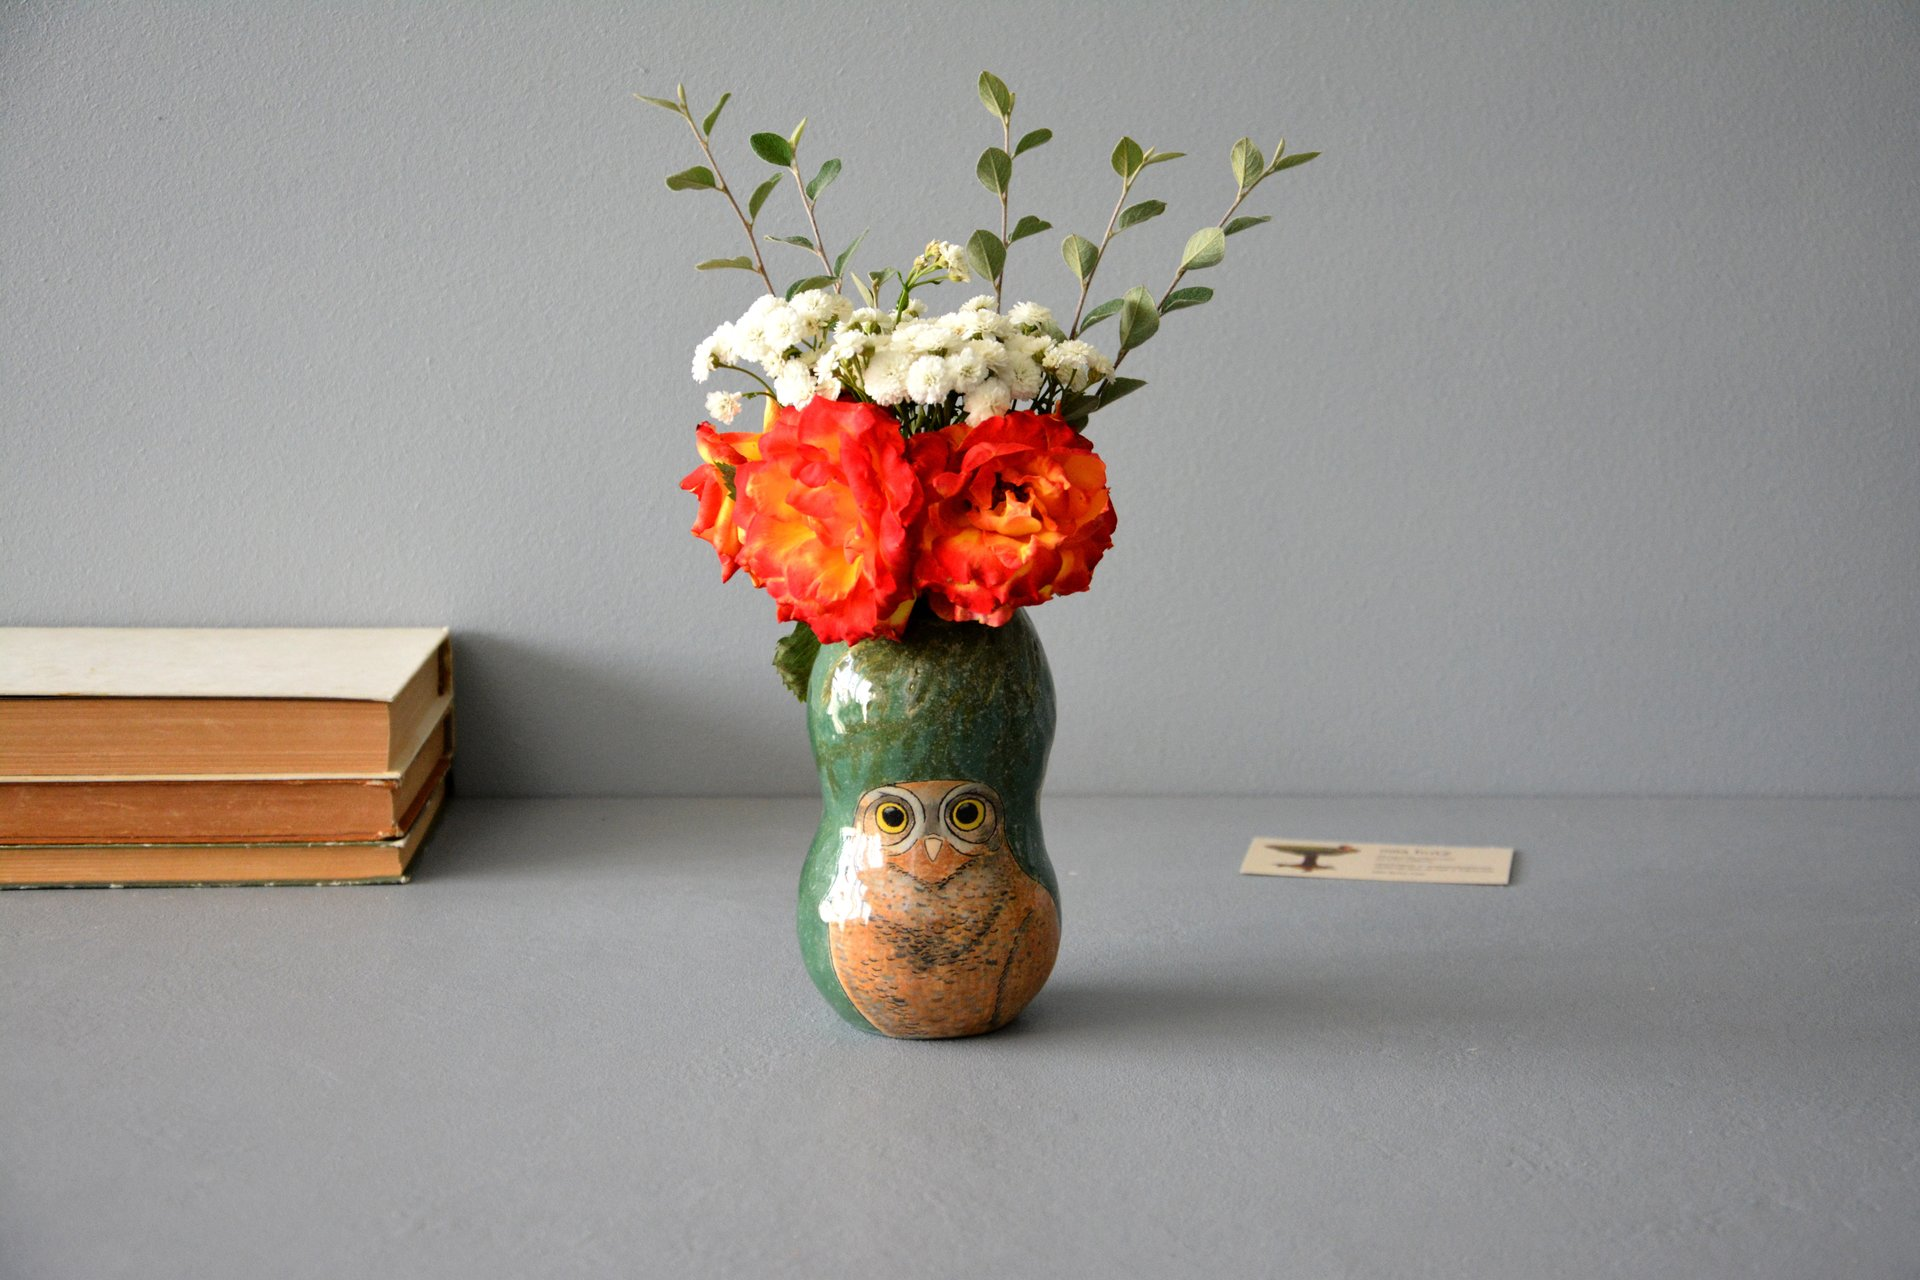 Hand painted vase (with a picture) «Burrowing owl», height - 13 cm. Photo 1062.